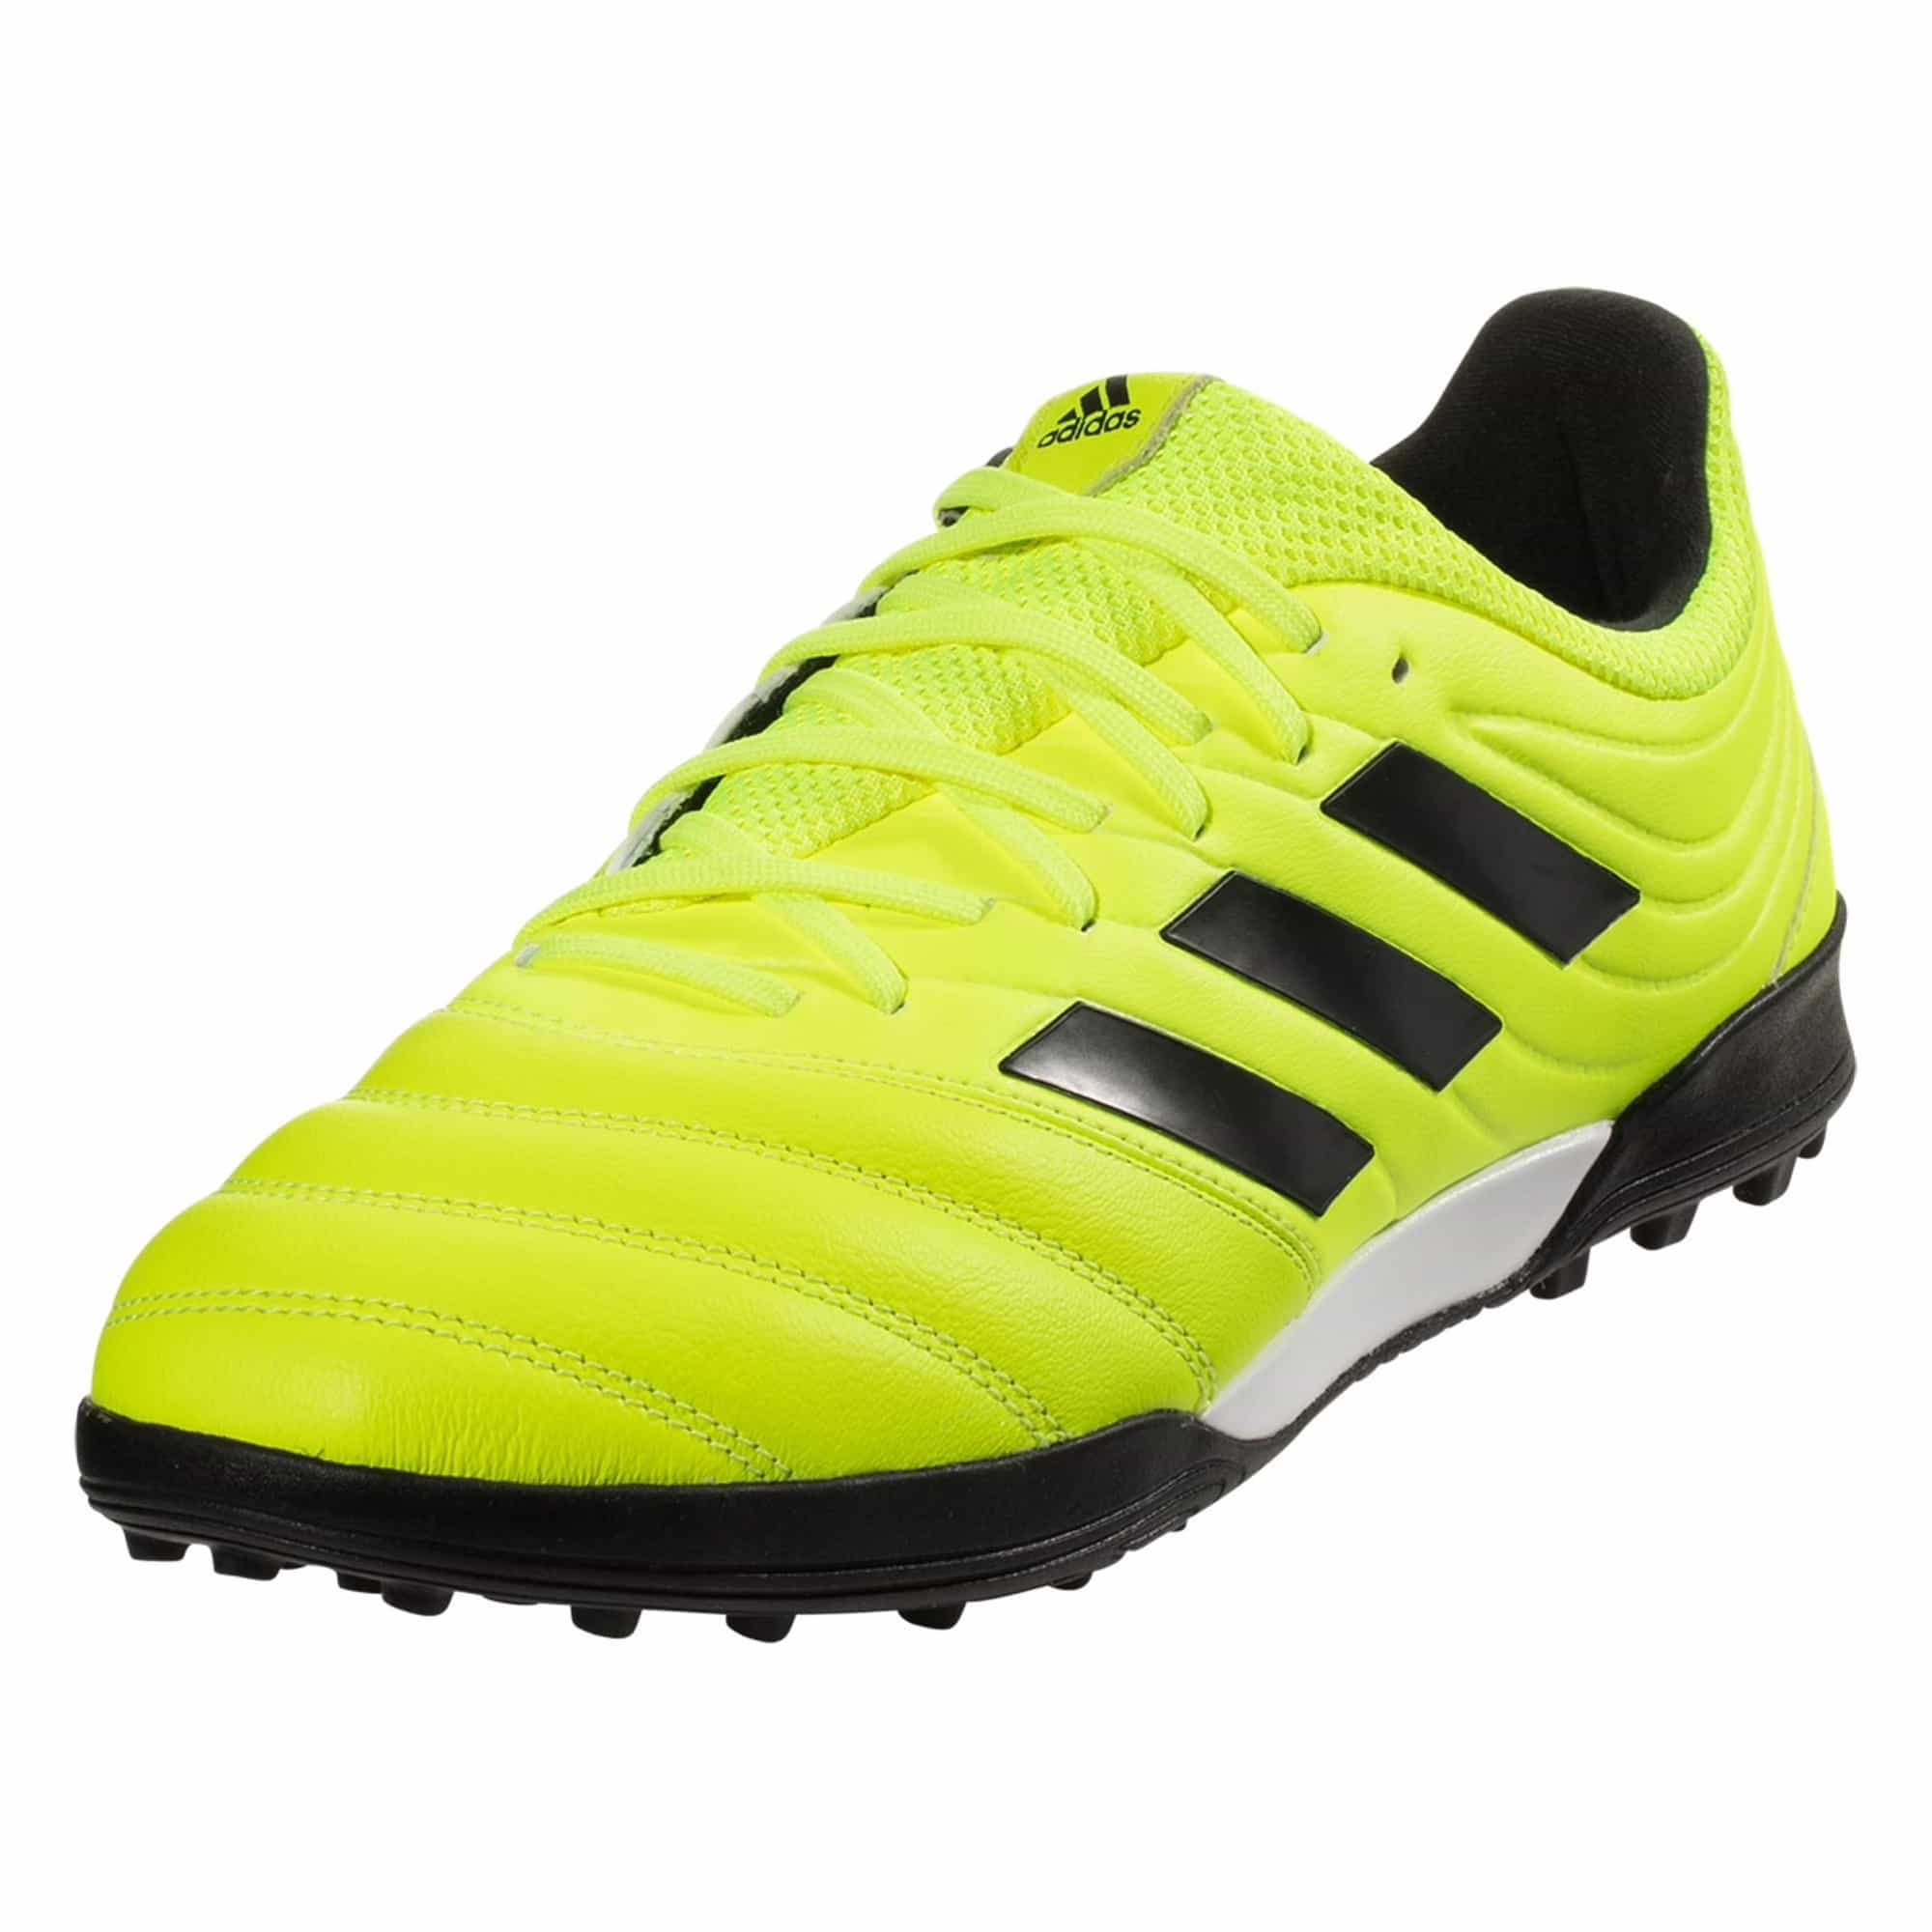 adidas Copa 19.3 TF Artificial Turf Soccer Shoe - Solar Yellow / Black / Solar Yellow